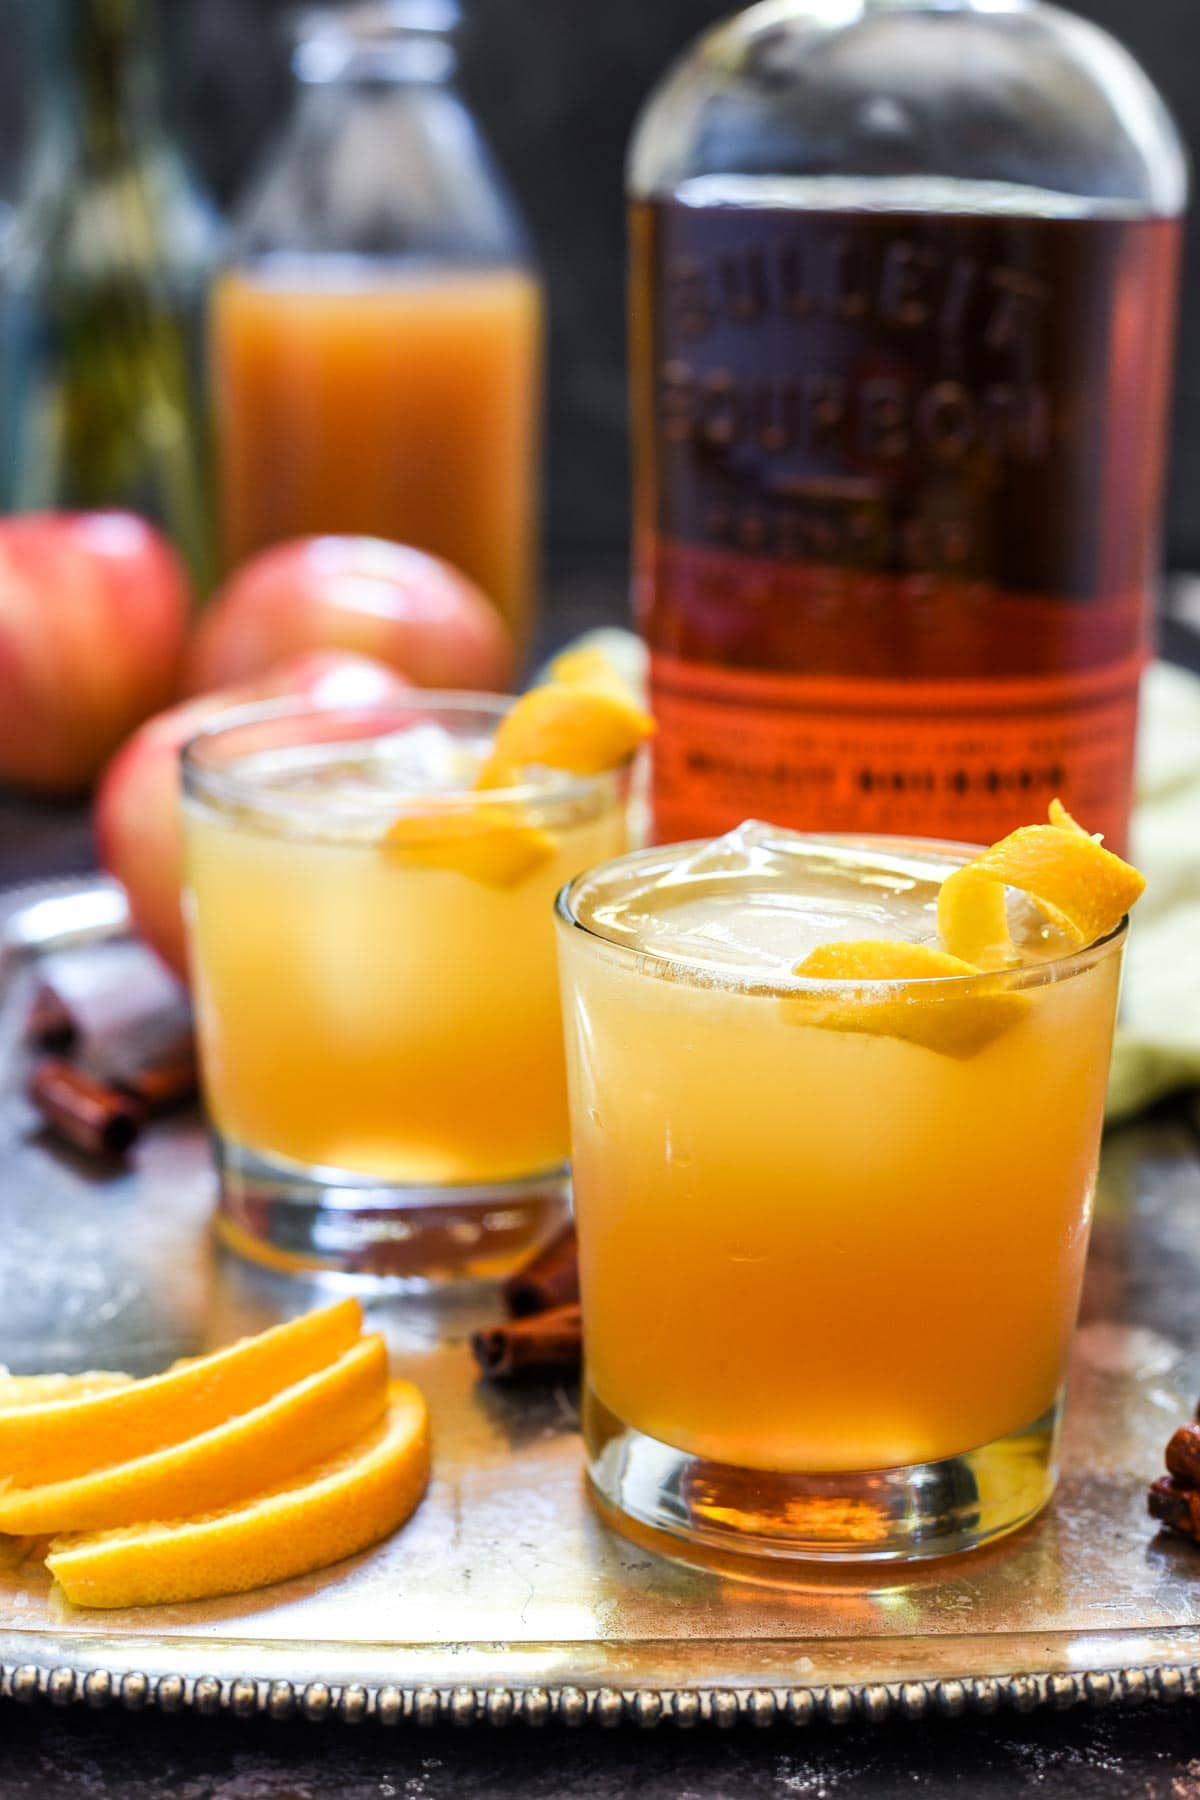 Bourbon, cider, and cinnamon syrup combine for the ultimate fall beverage: Bourbon Apple Cider Cocktails.